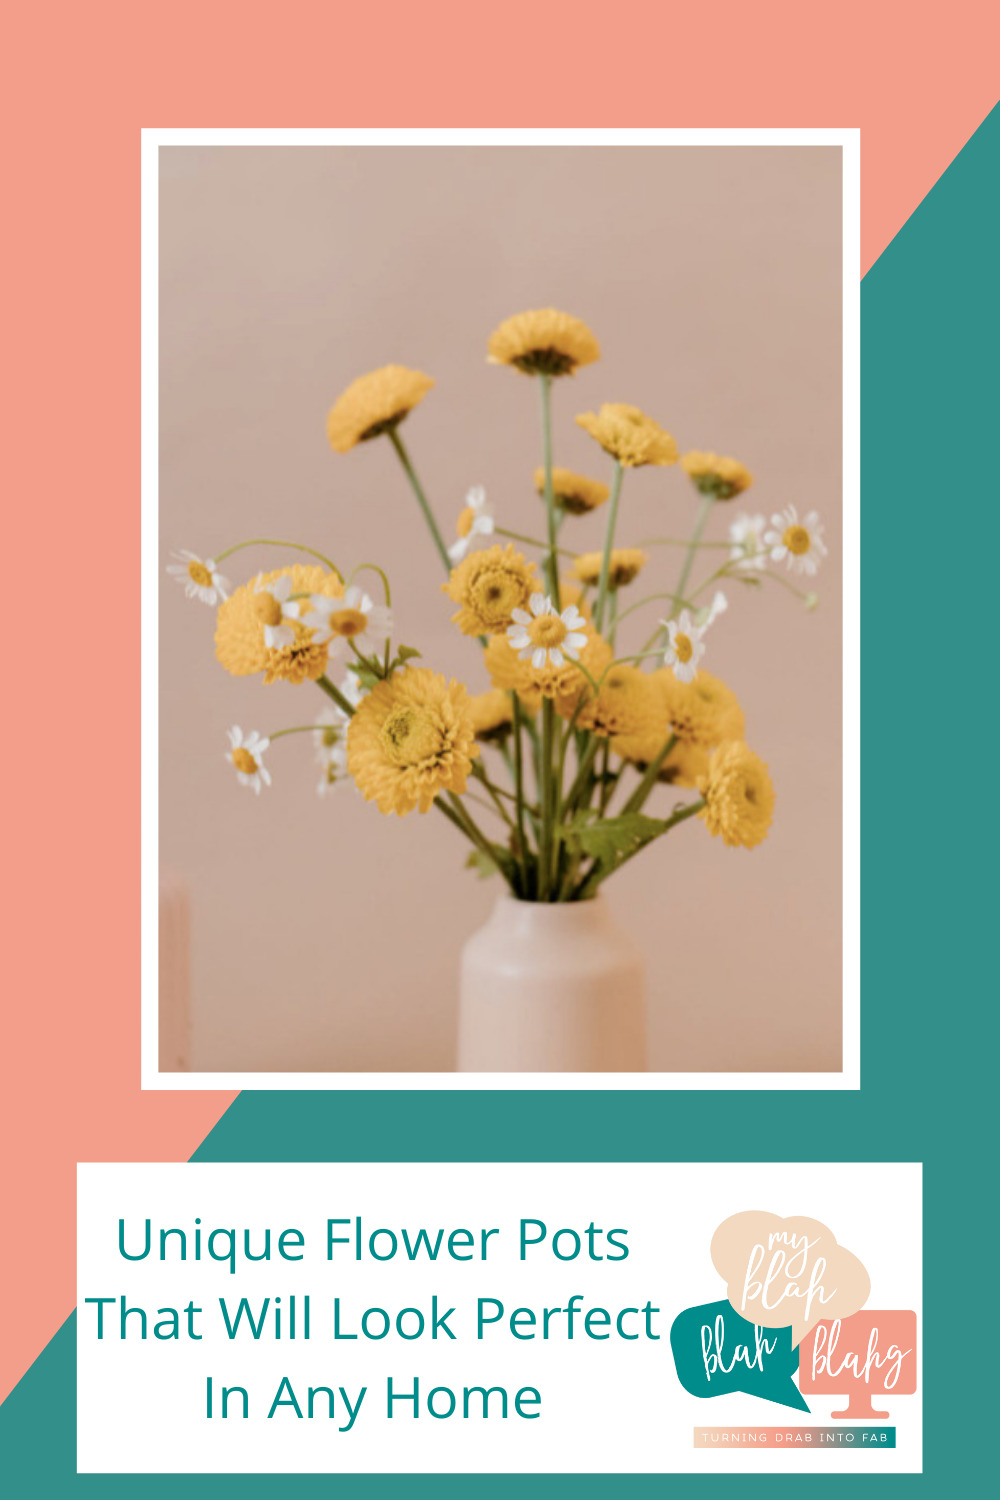 Myblahblahblahg.com has a little bit of everything. Get inspired with a range of tips. Find quick ways to make your home cuter instantly! These flower pot ideas will make all of your houseplants look amazing!